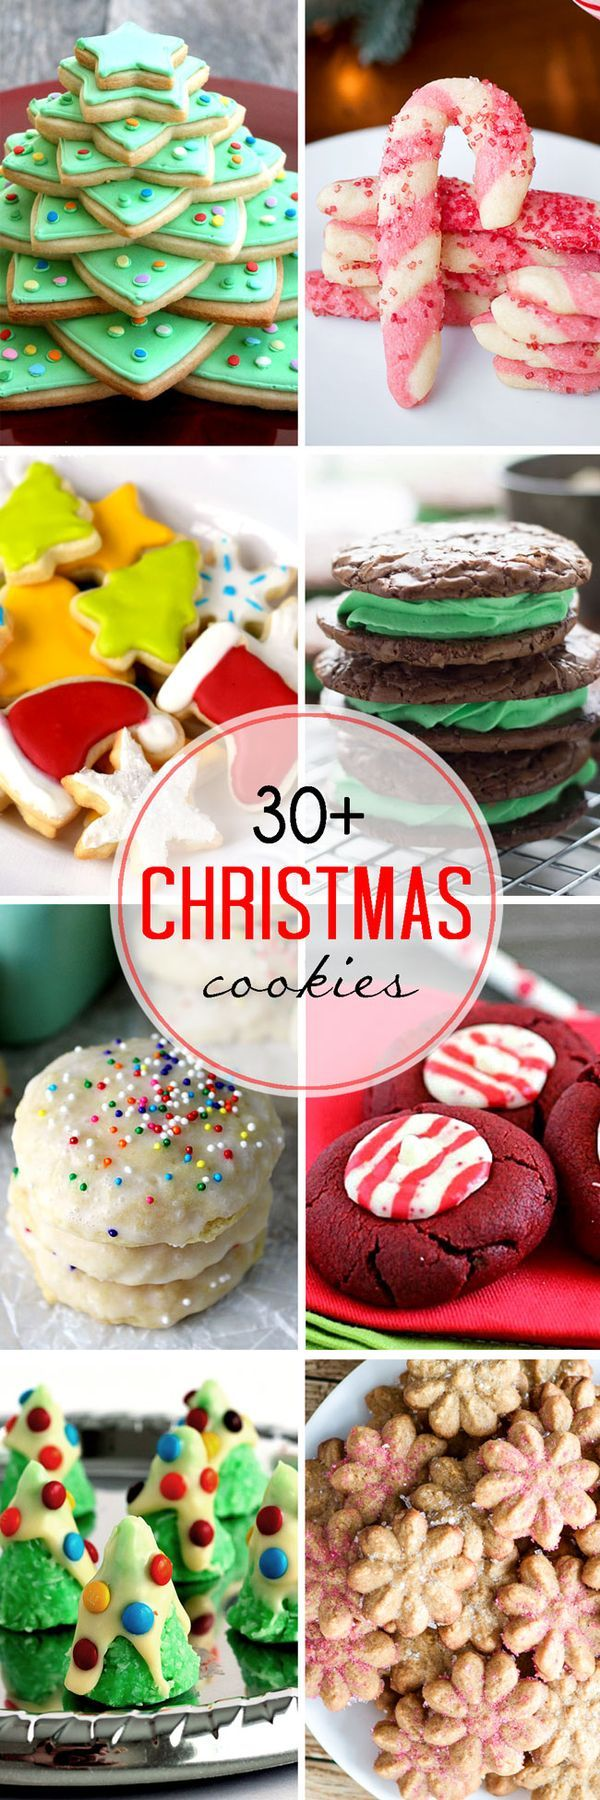 30+ Christmas Cookies! So many delicious Christmas cookie recipes in one place - you are sure to find something you love!